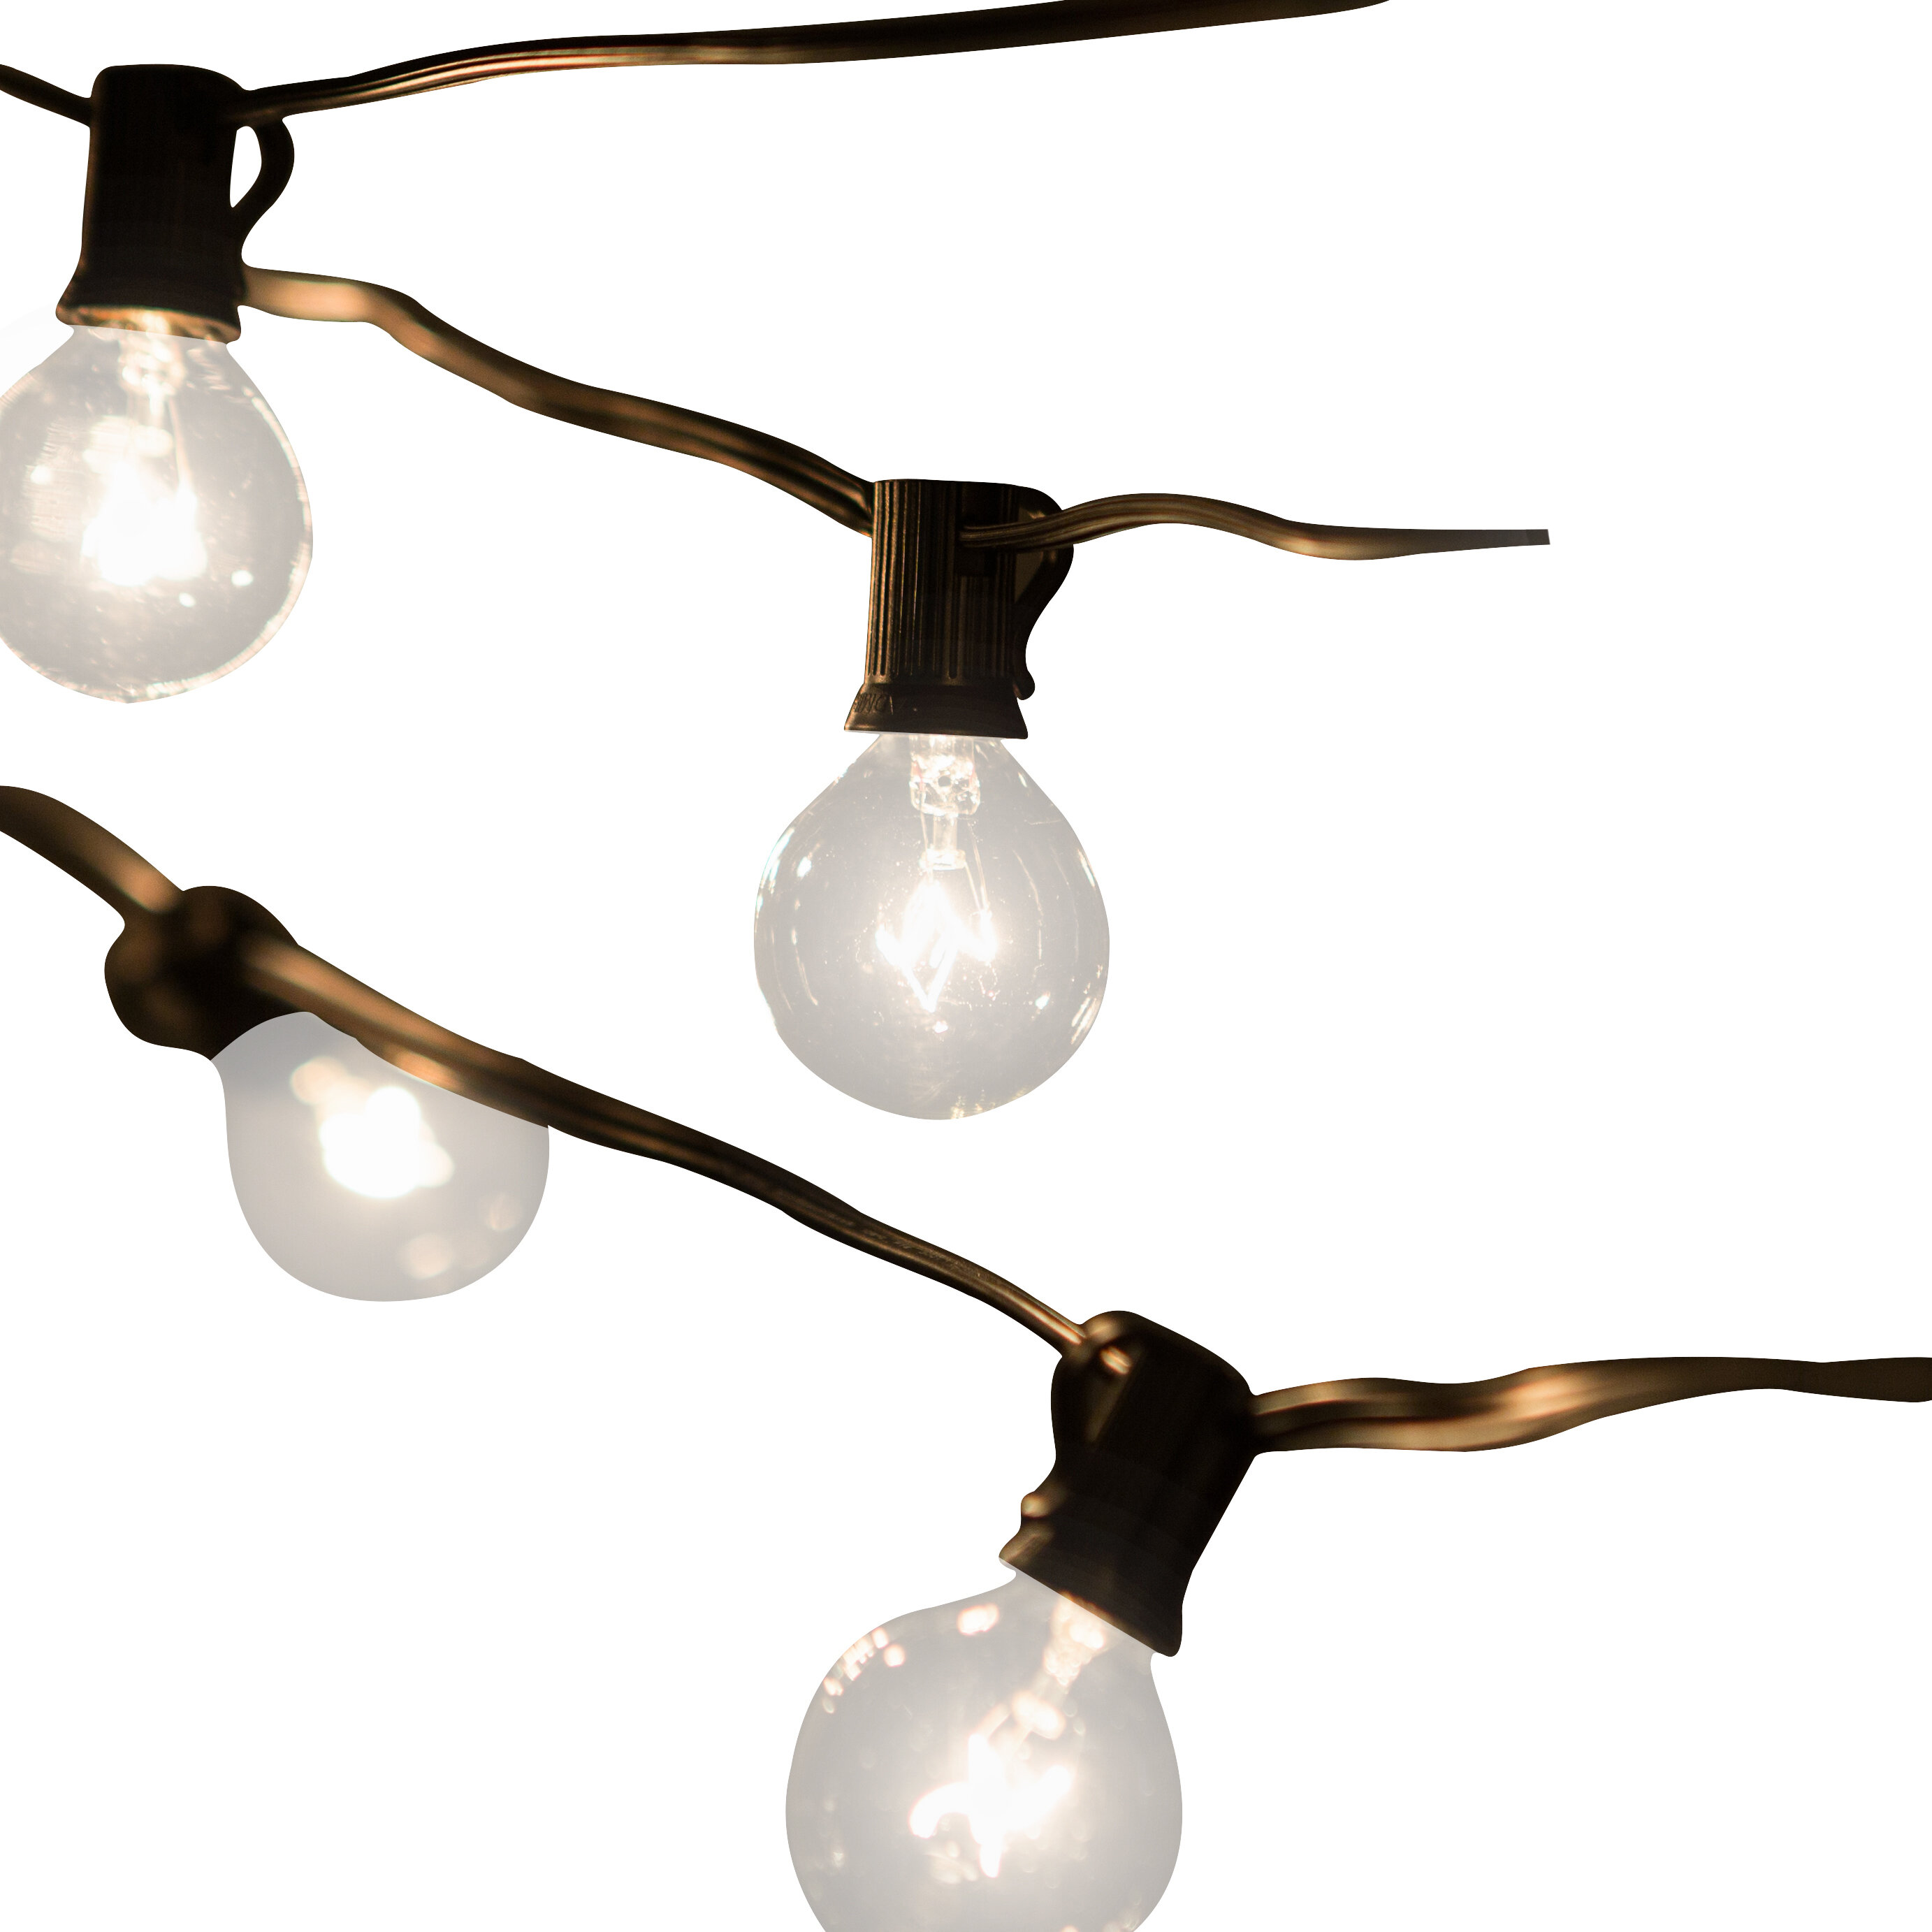 Laurel Foundry Modern Farmhouse Jaime 50-Light 50 ft. Globe String on